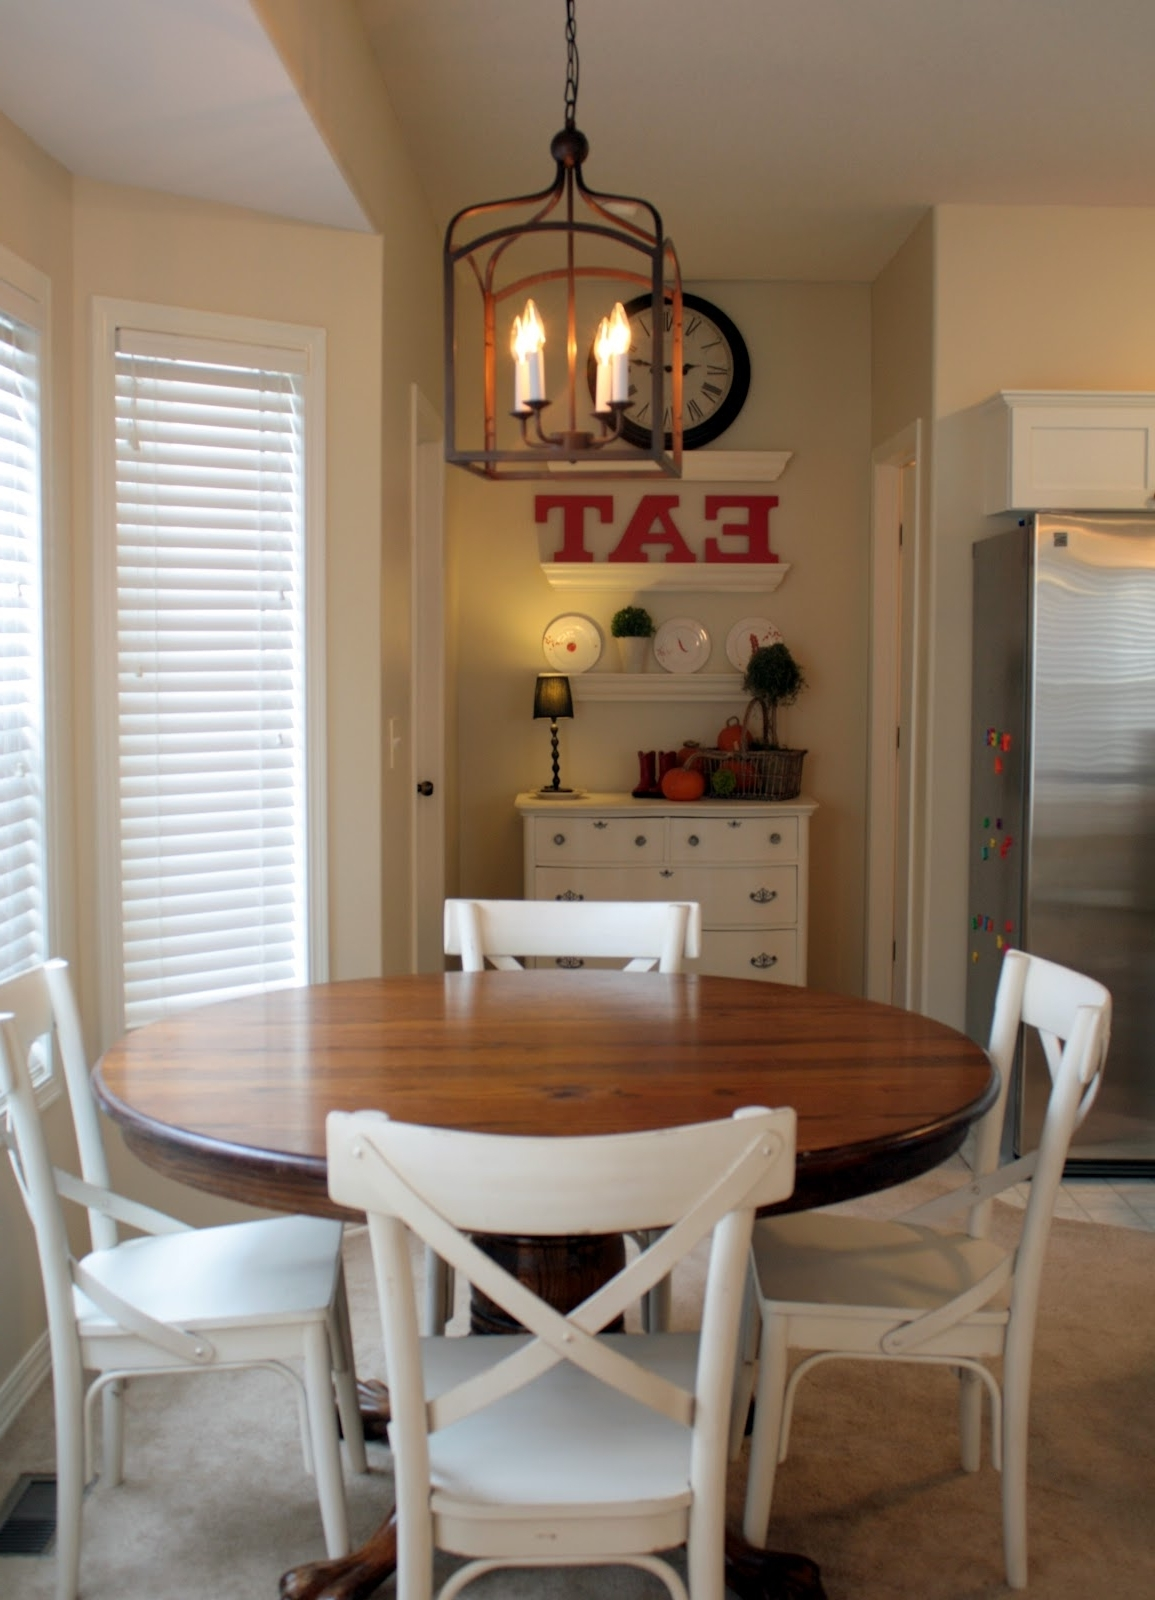 Favorite Image 9057 From Post: Kitchen Table Lighting – With Contemporary With Over Dining Tables Lighting (View 6 of 25)